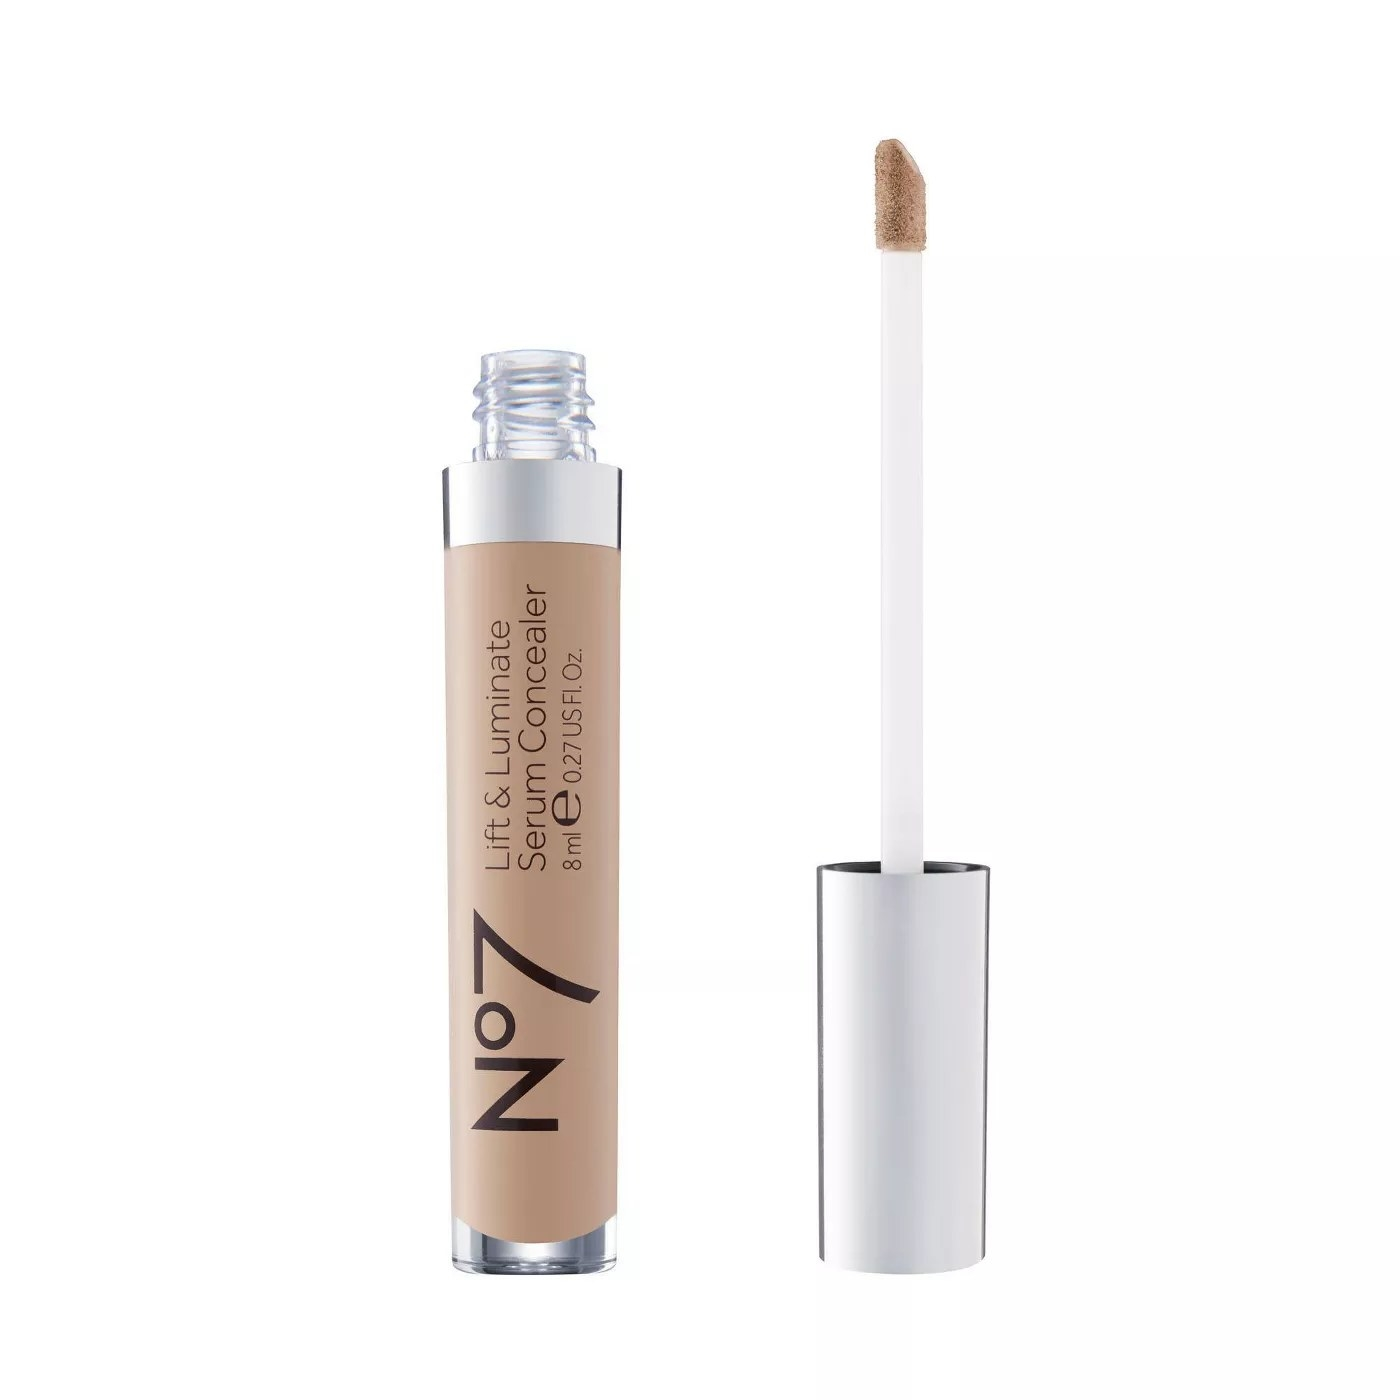 The No7 lift and luminate serum concealer